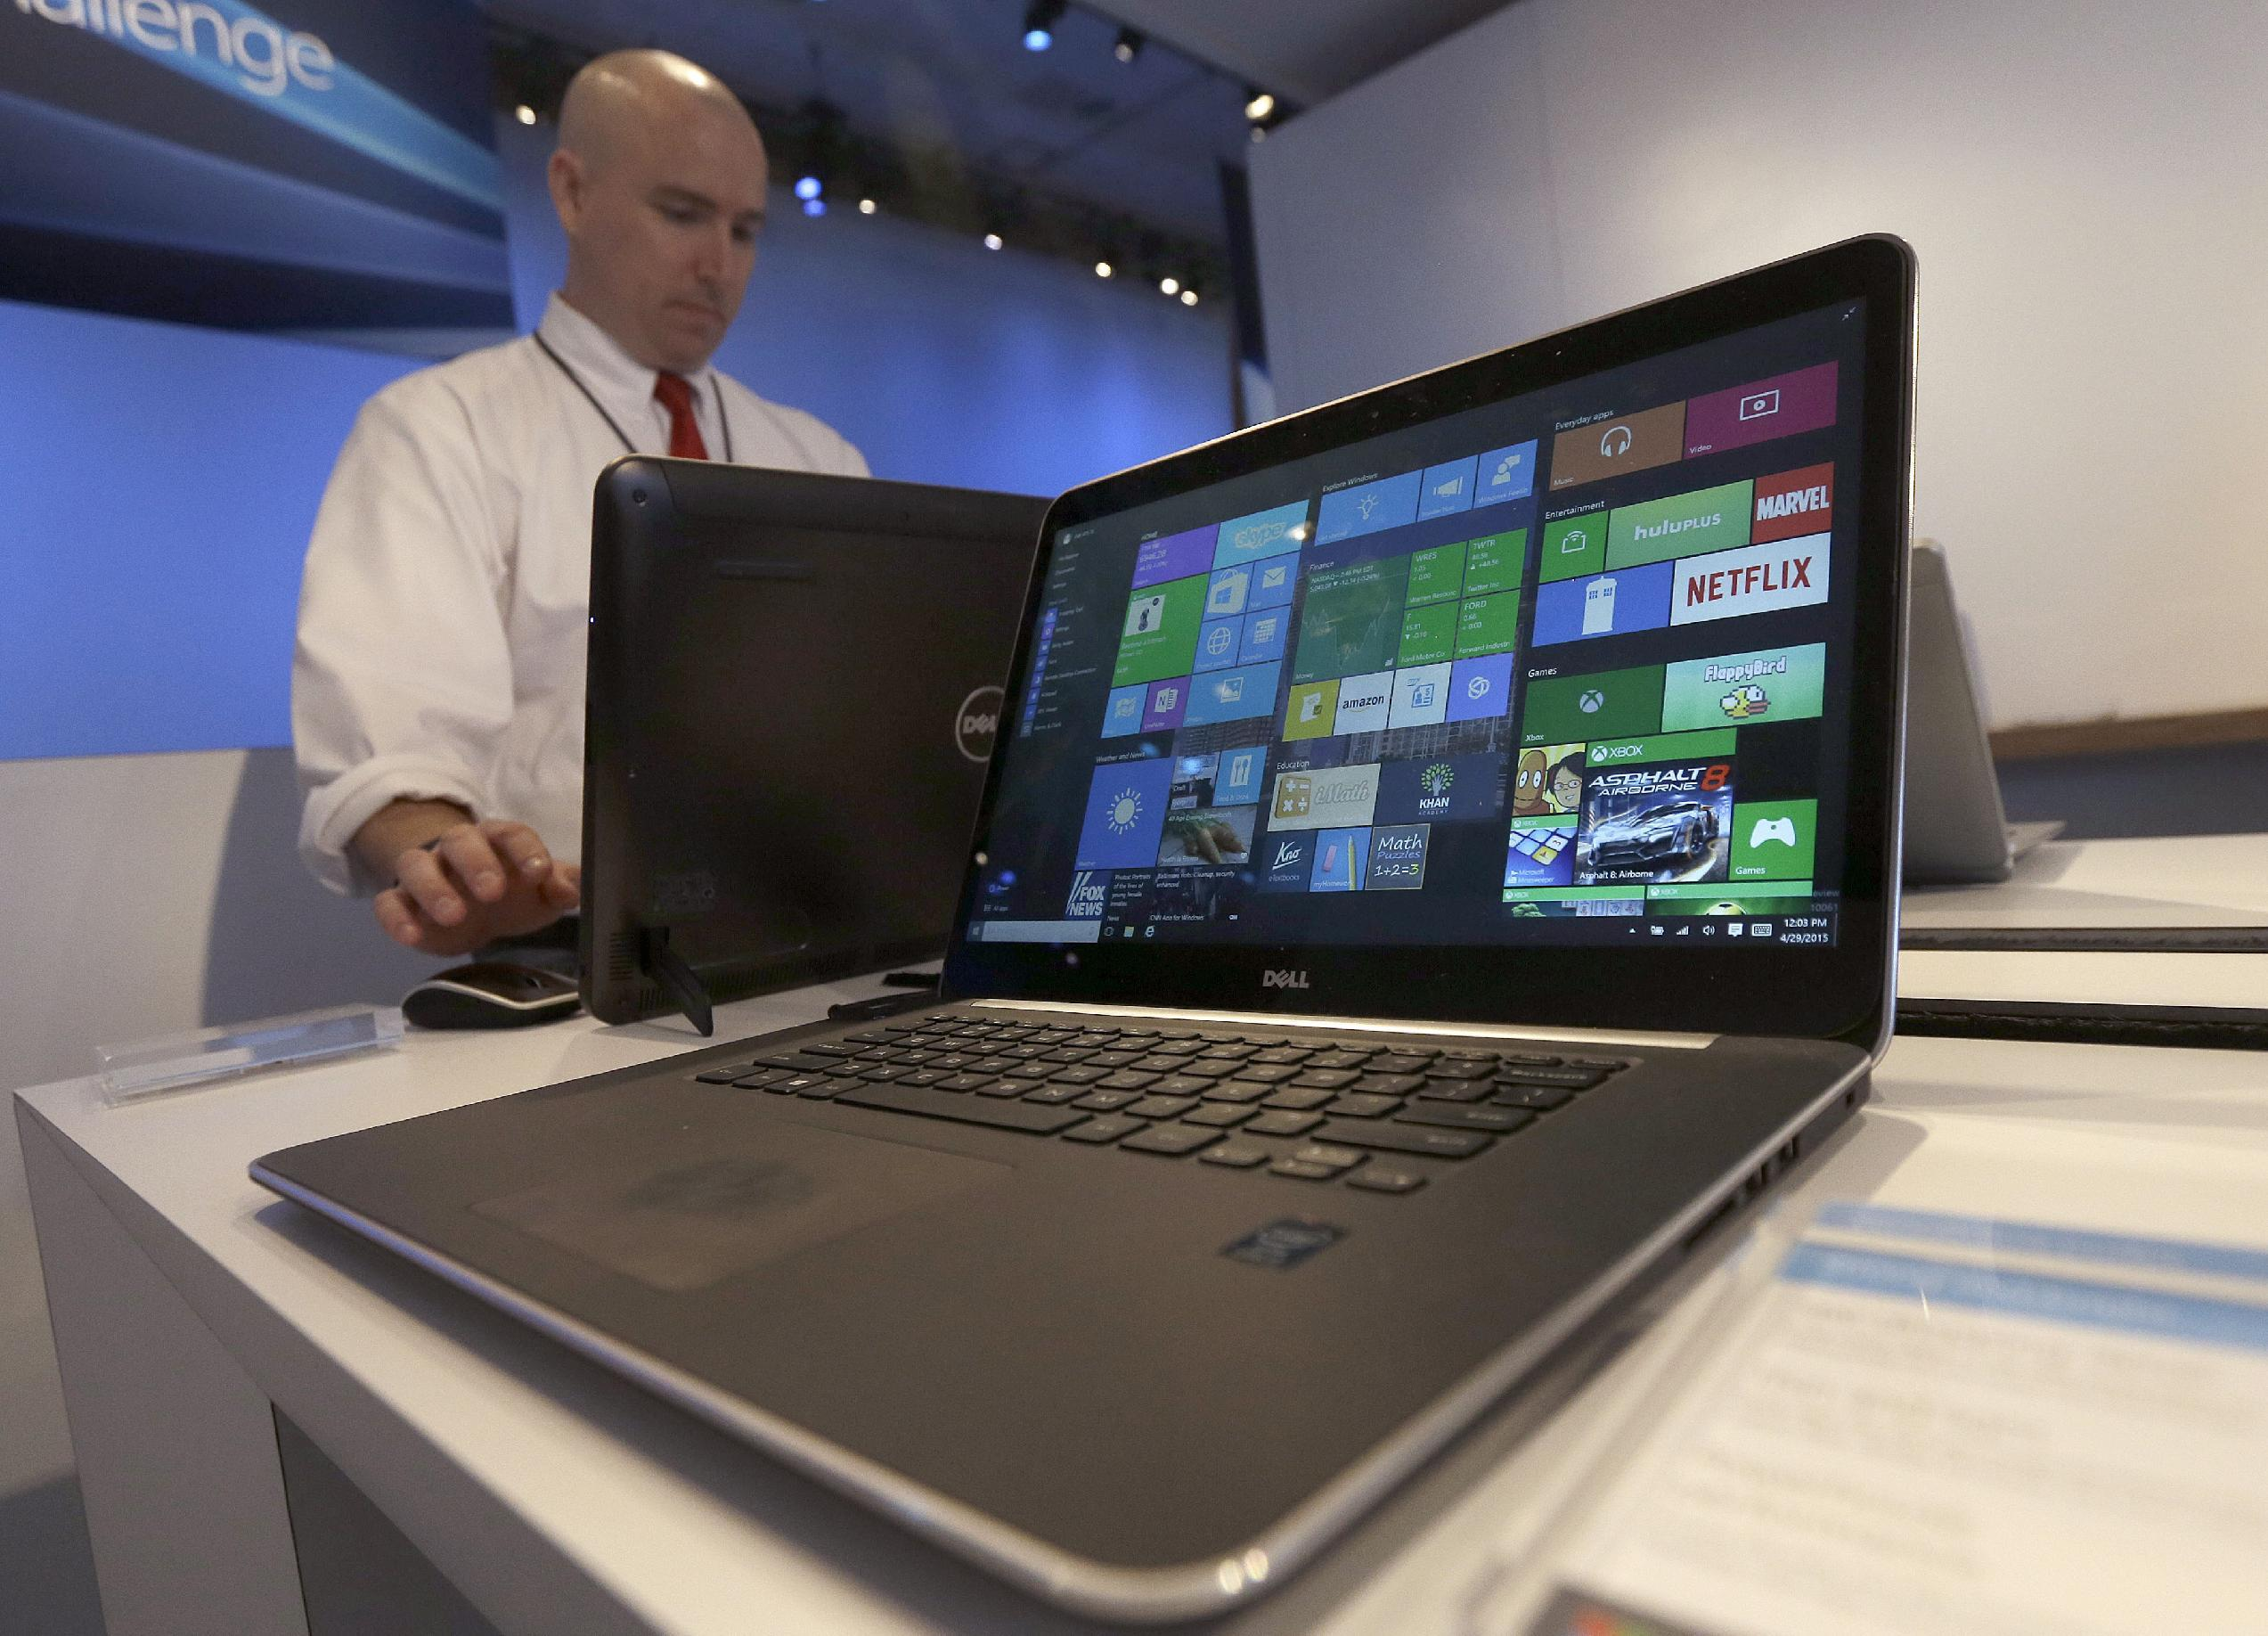 Microsoft's free Windows 10 giveaway: What that means